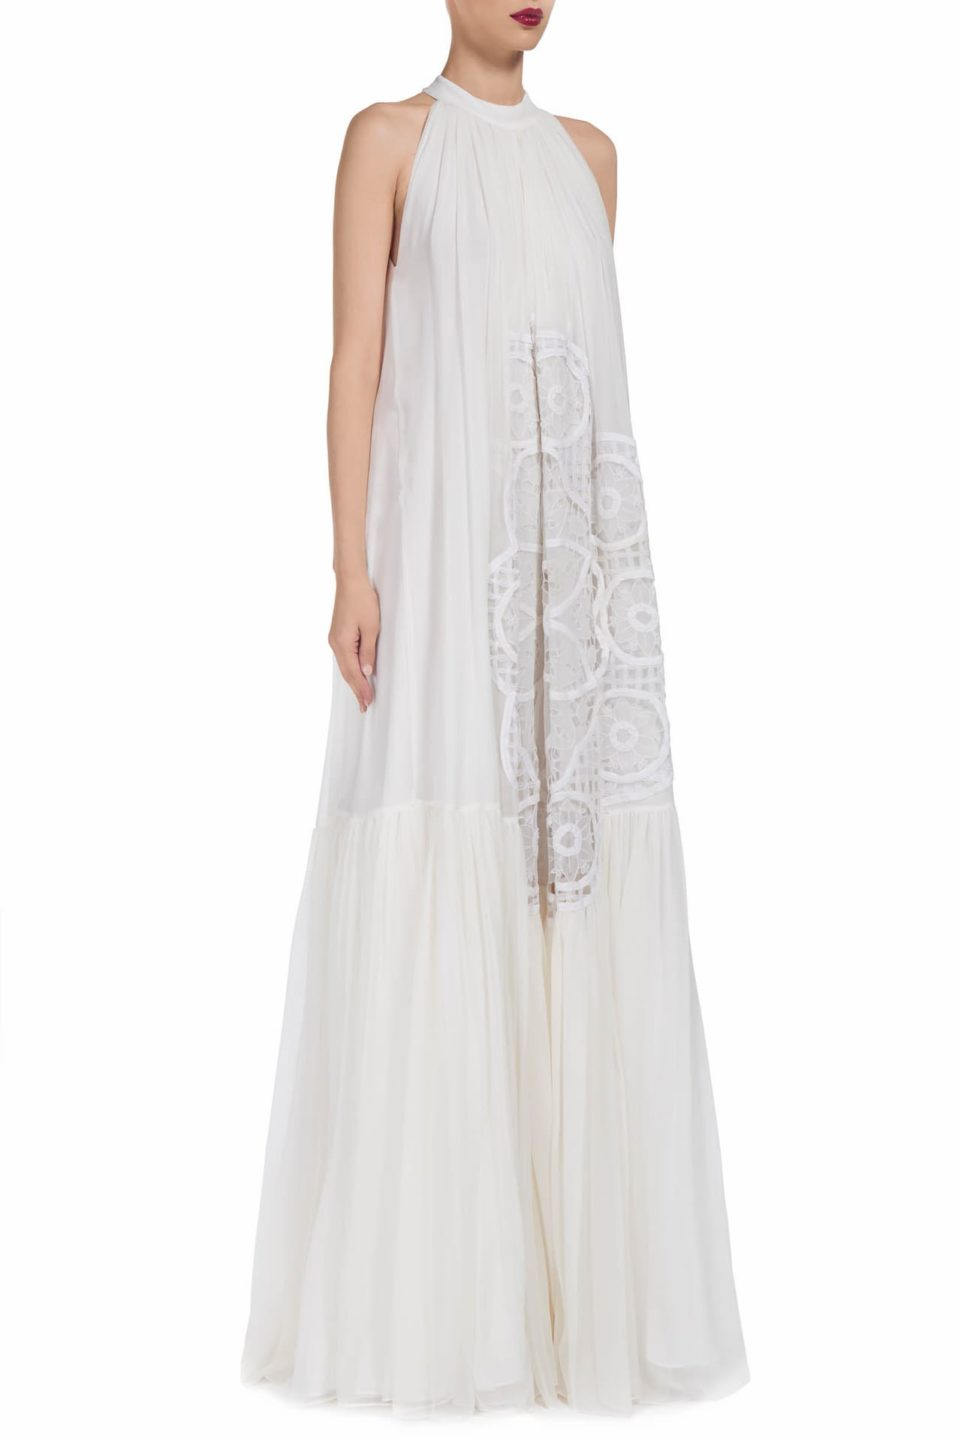 Jasline SS1986 white silk chiffon pussybow gown with floral-cut lace